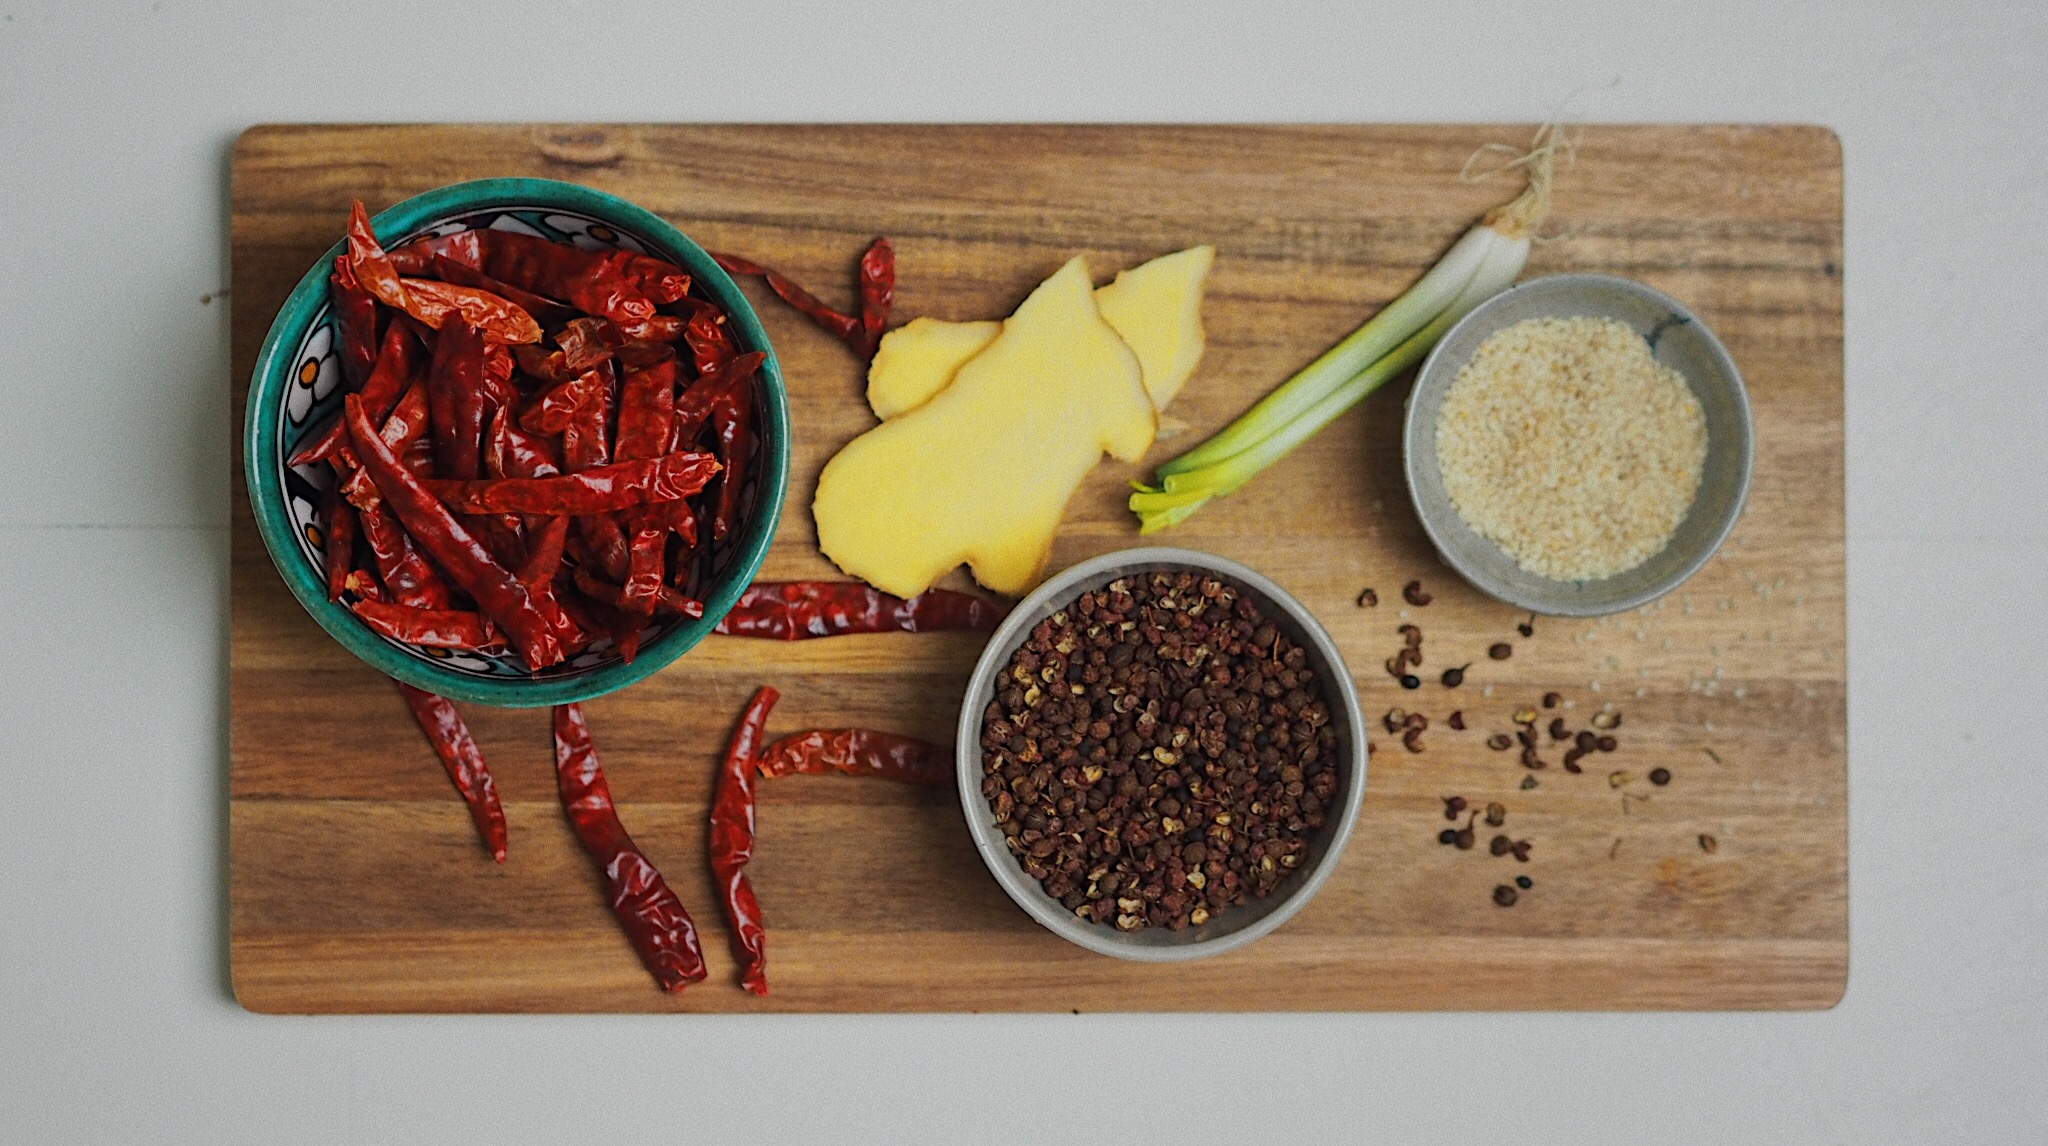 All ingredients you need for a Sichuan style spicy and tingling.